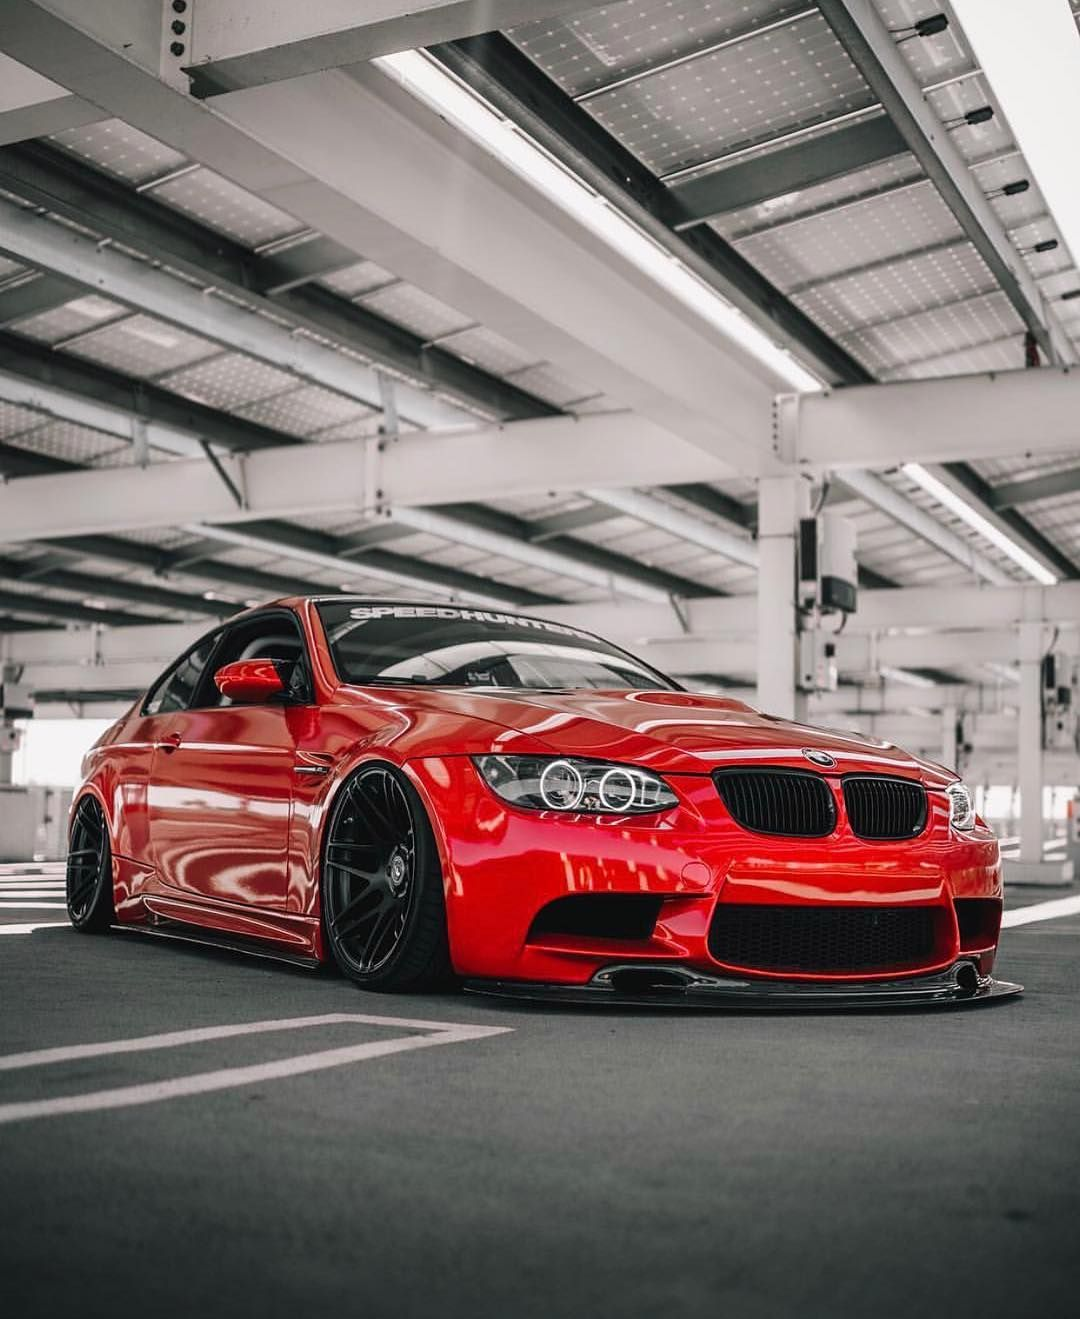 Bmw E92 M3 Red Slammed With Images Dream Cars Bmw Bmw Series